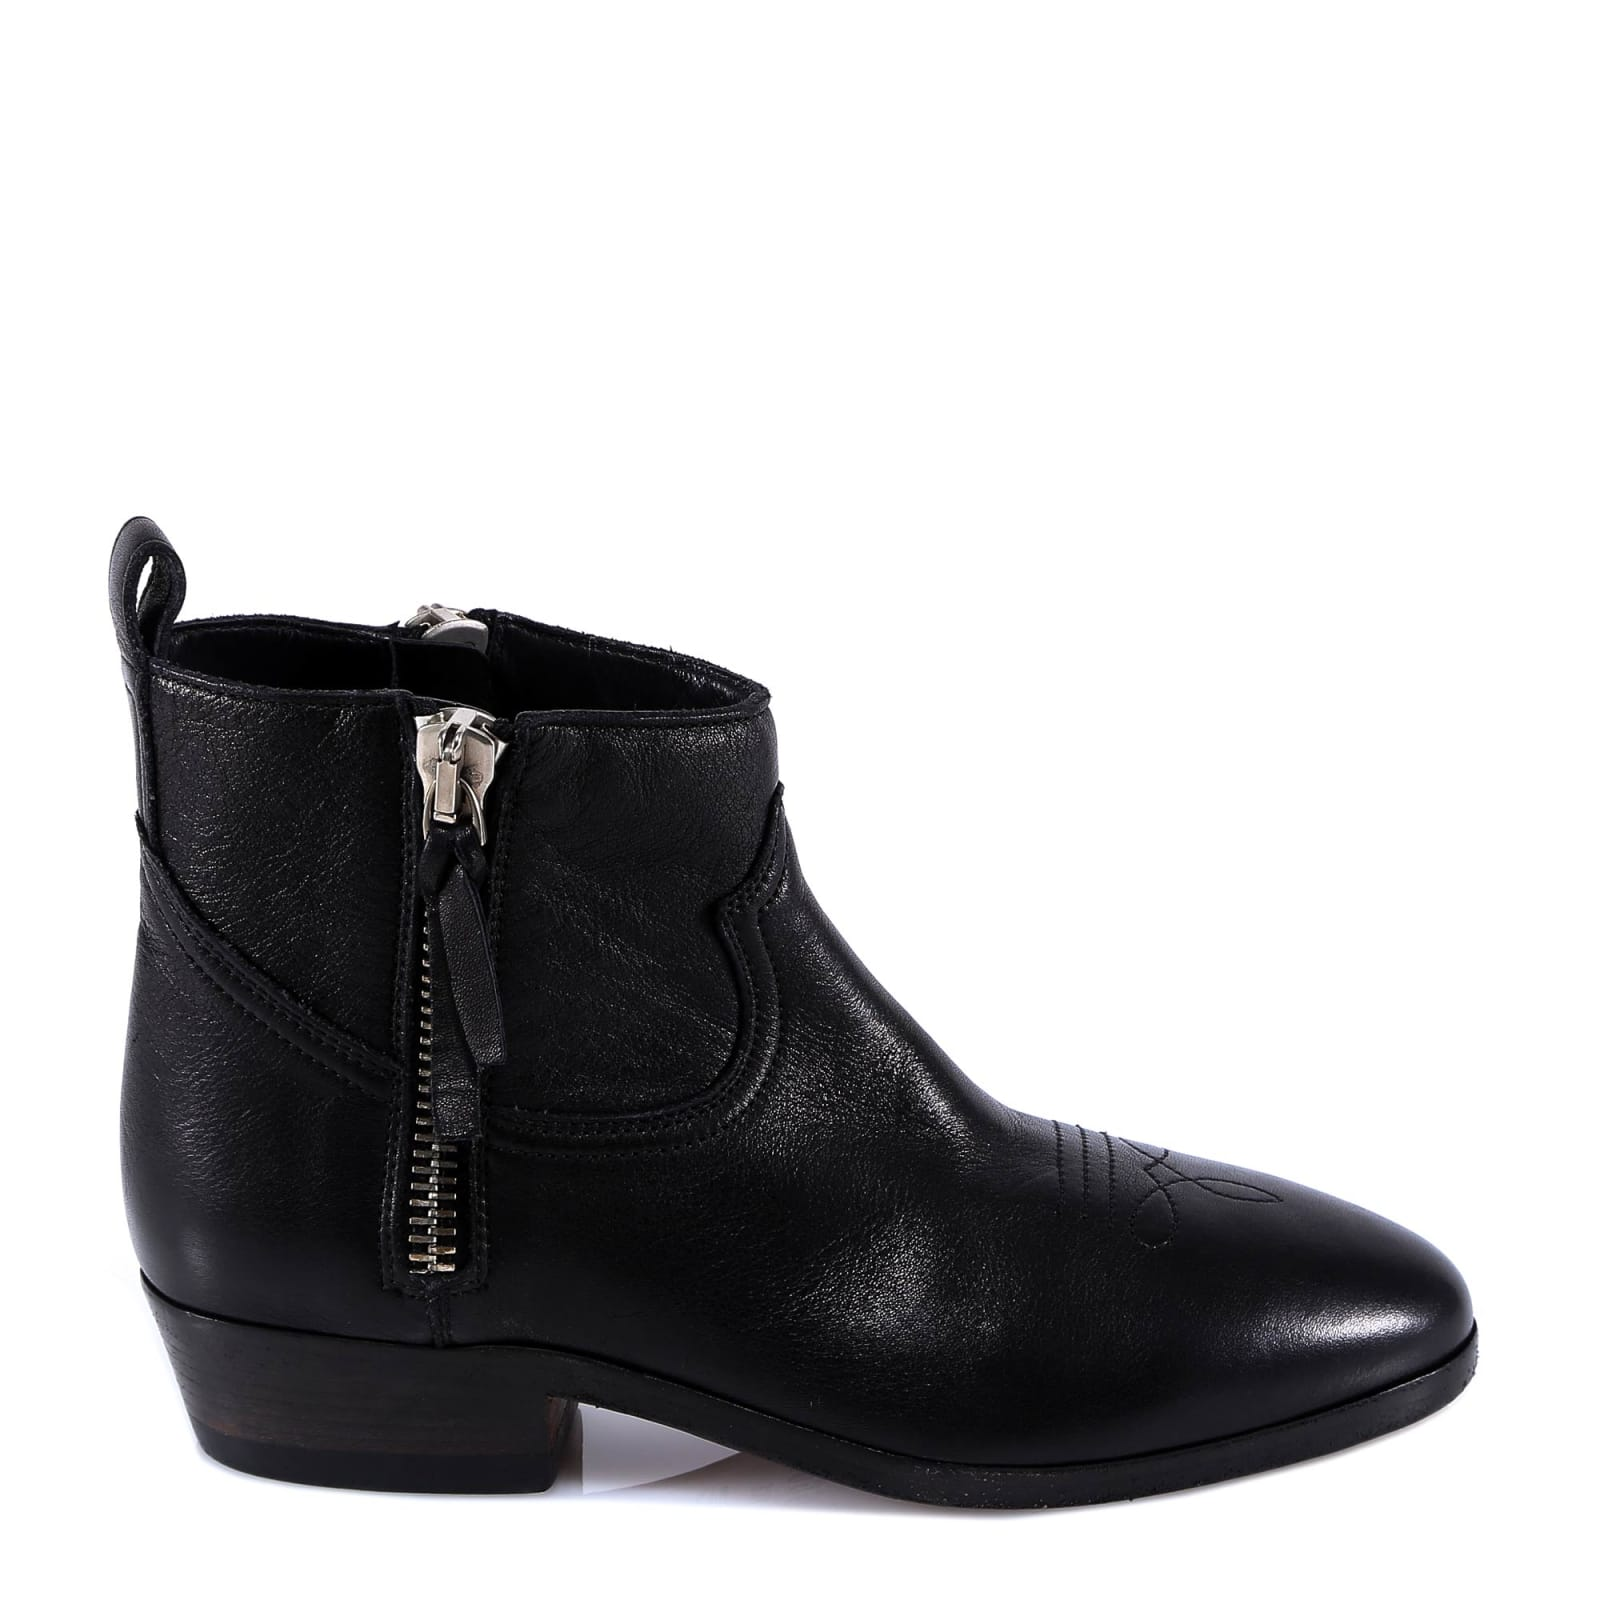 Buy Golden Goose Viand Boots online, shop Golden Goose shoes with free shipping